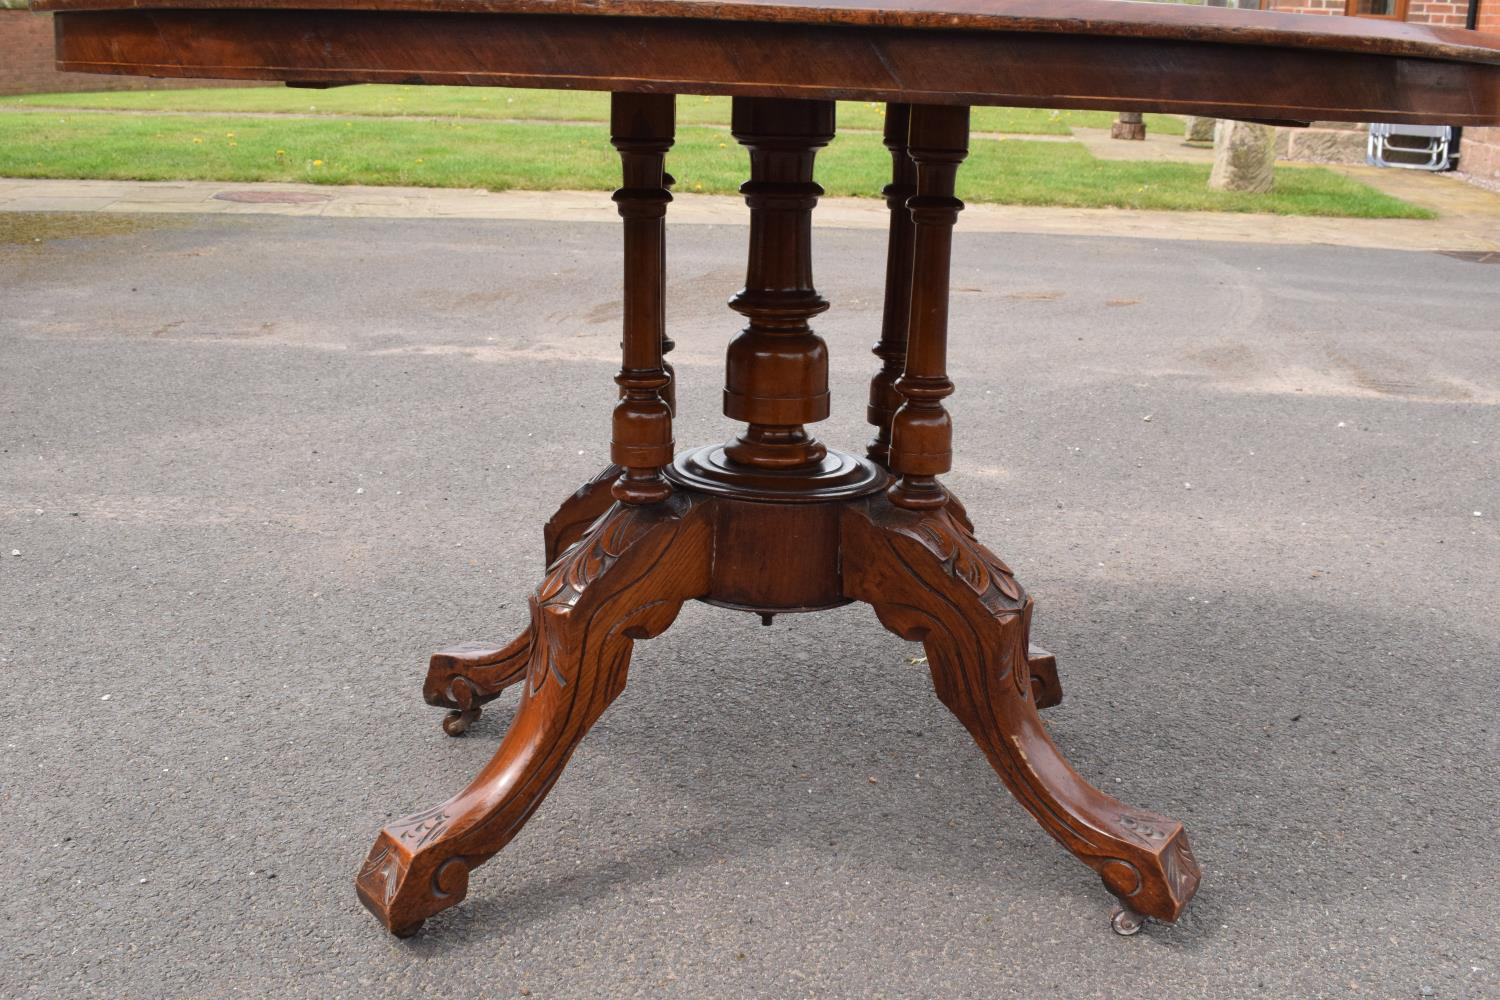 Late 19th century Victorian walnut veneered table with tilt top movement. In good condition with - Image 4 of 7